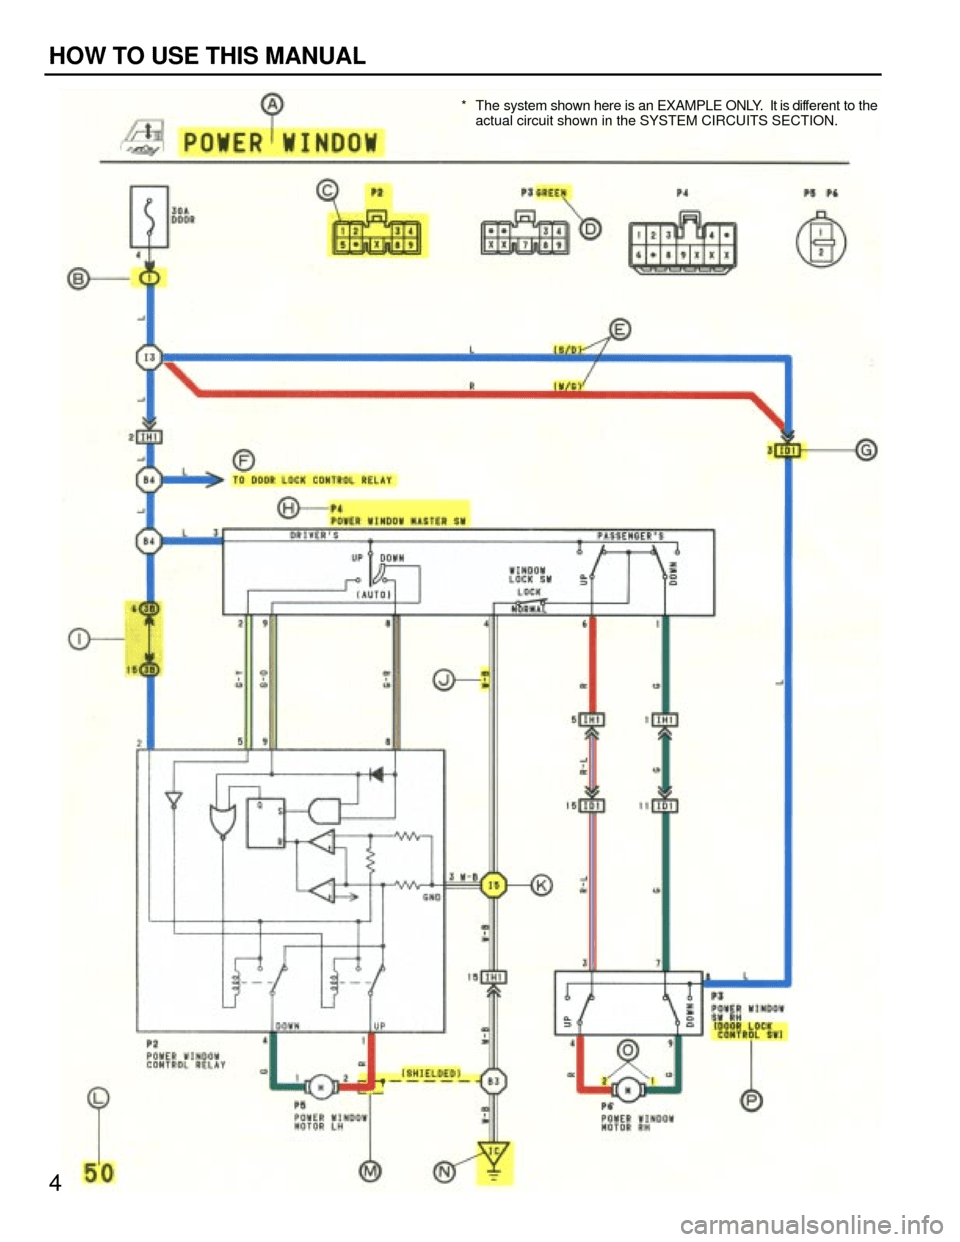 medium resolution of  4 g wiring diagrams workshop manual rh carmanualsonline info at toyota camry 1994 xv10 4 g wiring diagrams workshop manual page 4 for 2002 prius wiring